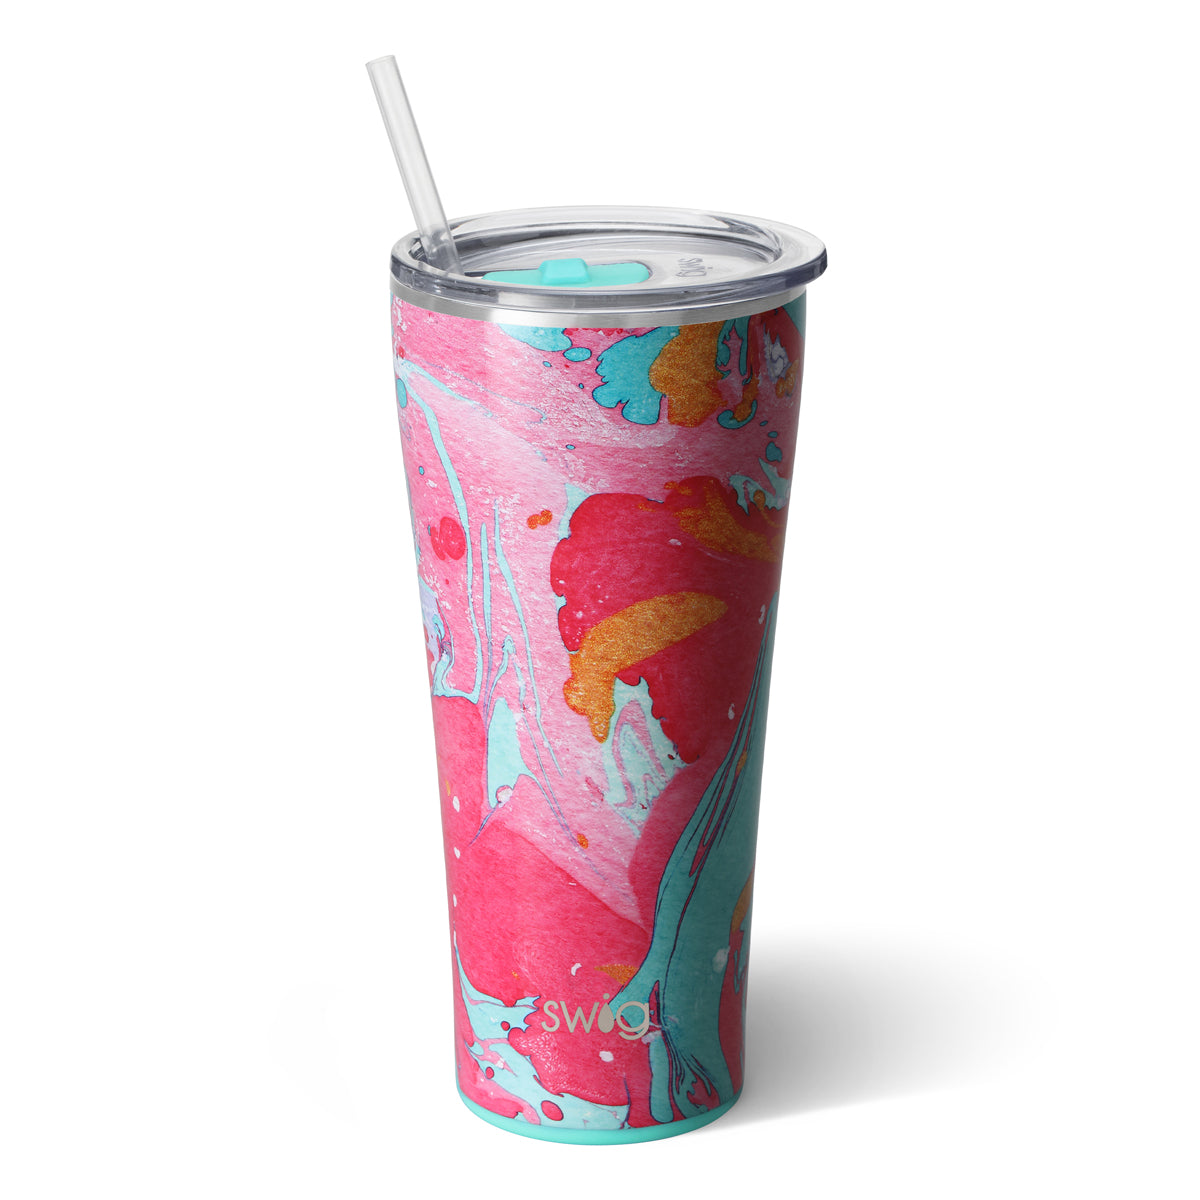 Swig 32oz Cotton Candy Tumbler